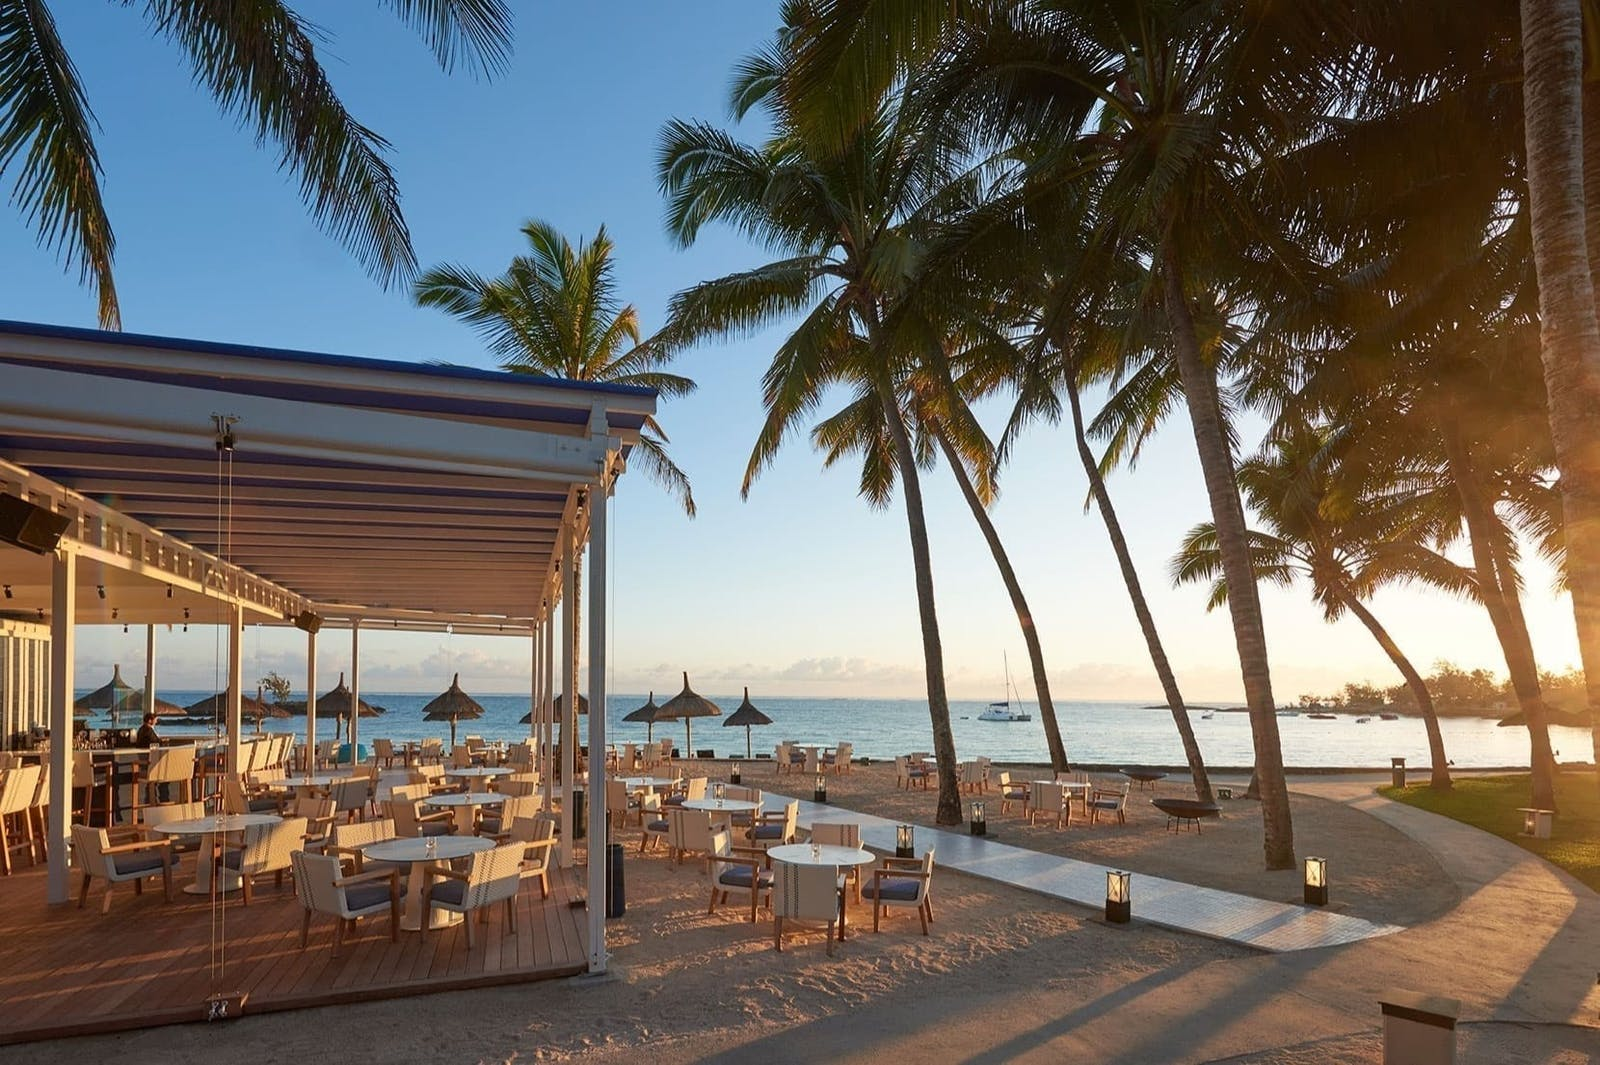 The Blu Bar at Constance Belle Mare Plage, Mauritius